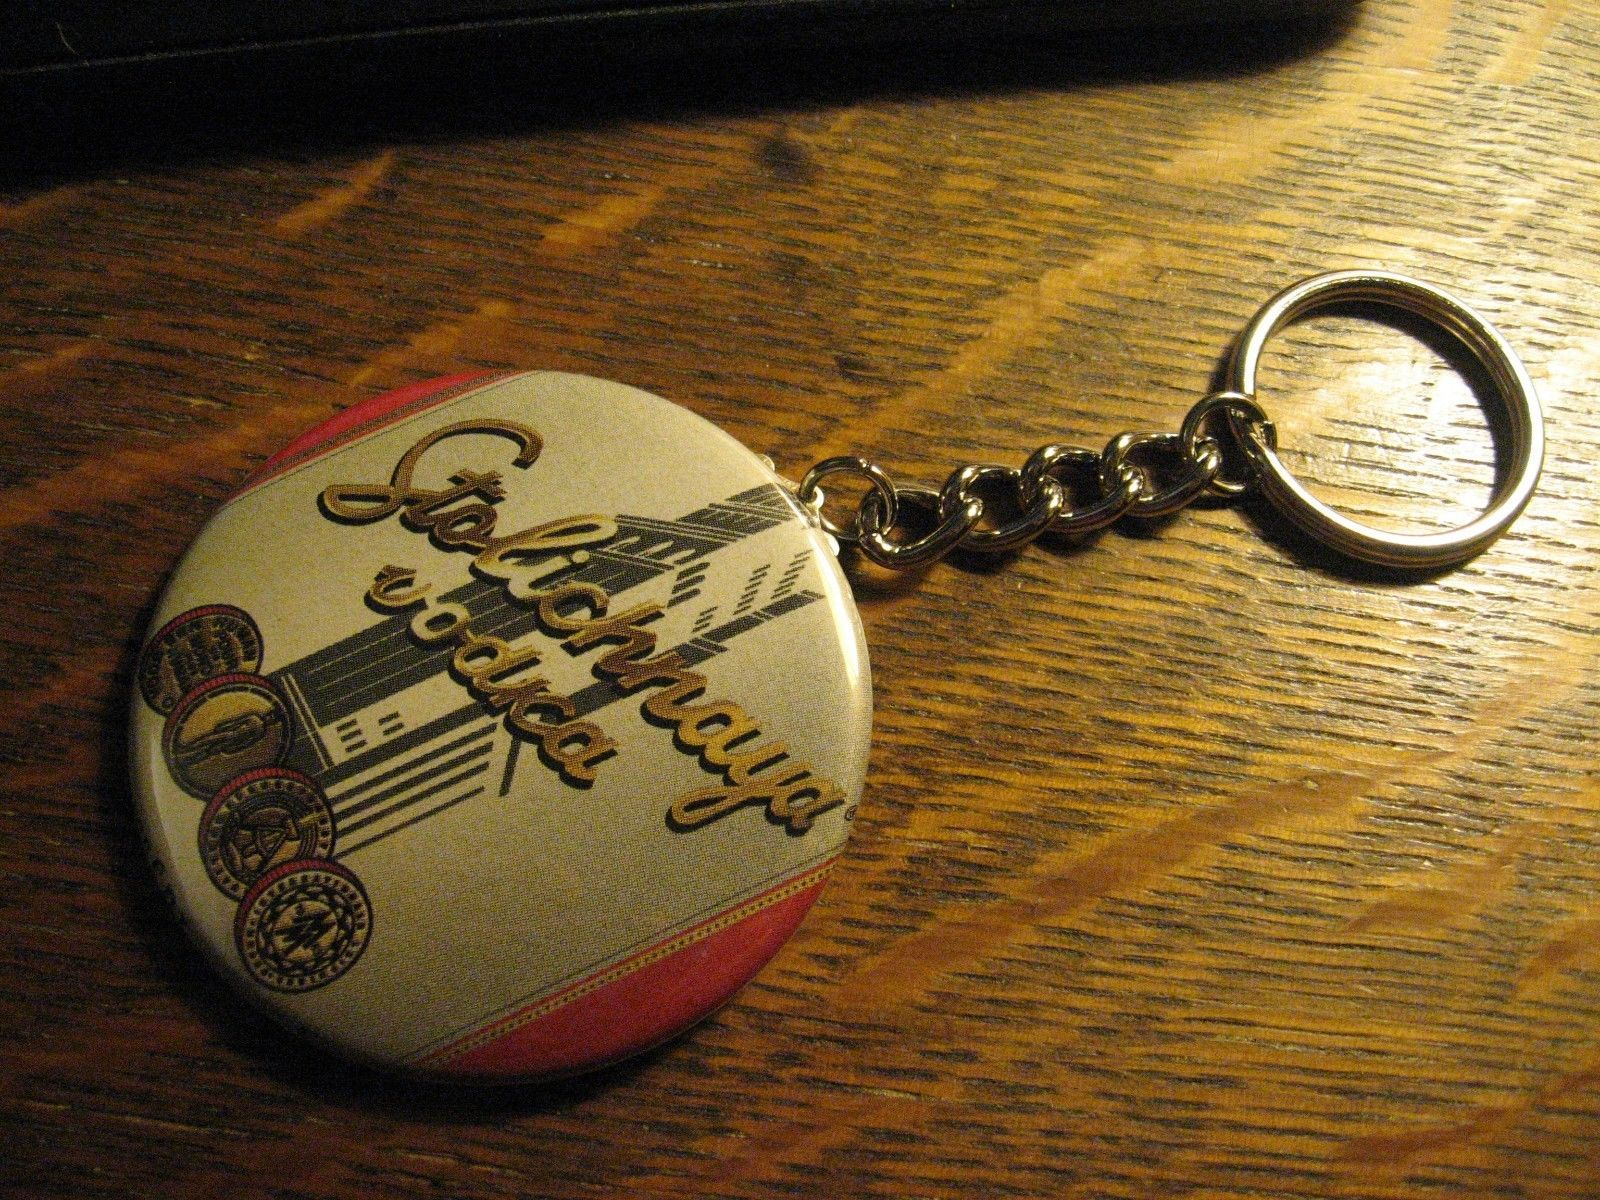 Stolichnaya Vodka Keychain - Repurposed Magazine Backpack Purse Clip Ornament